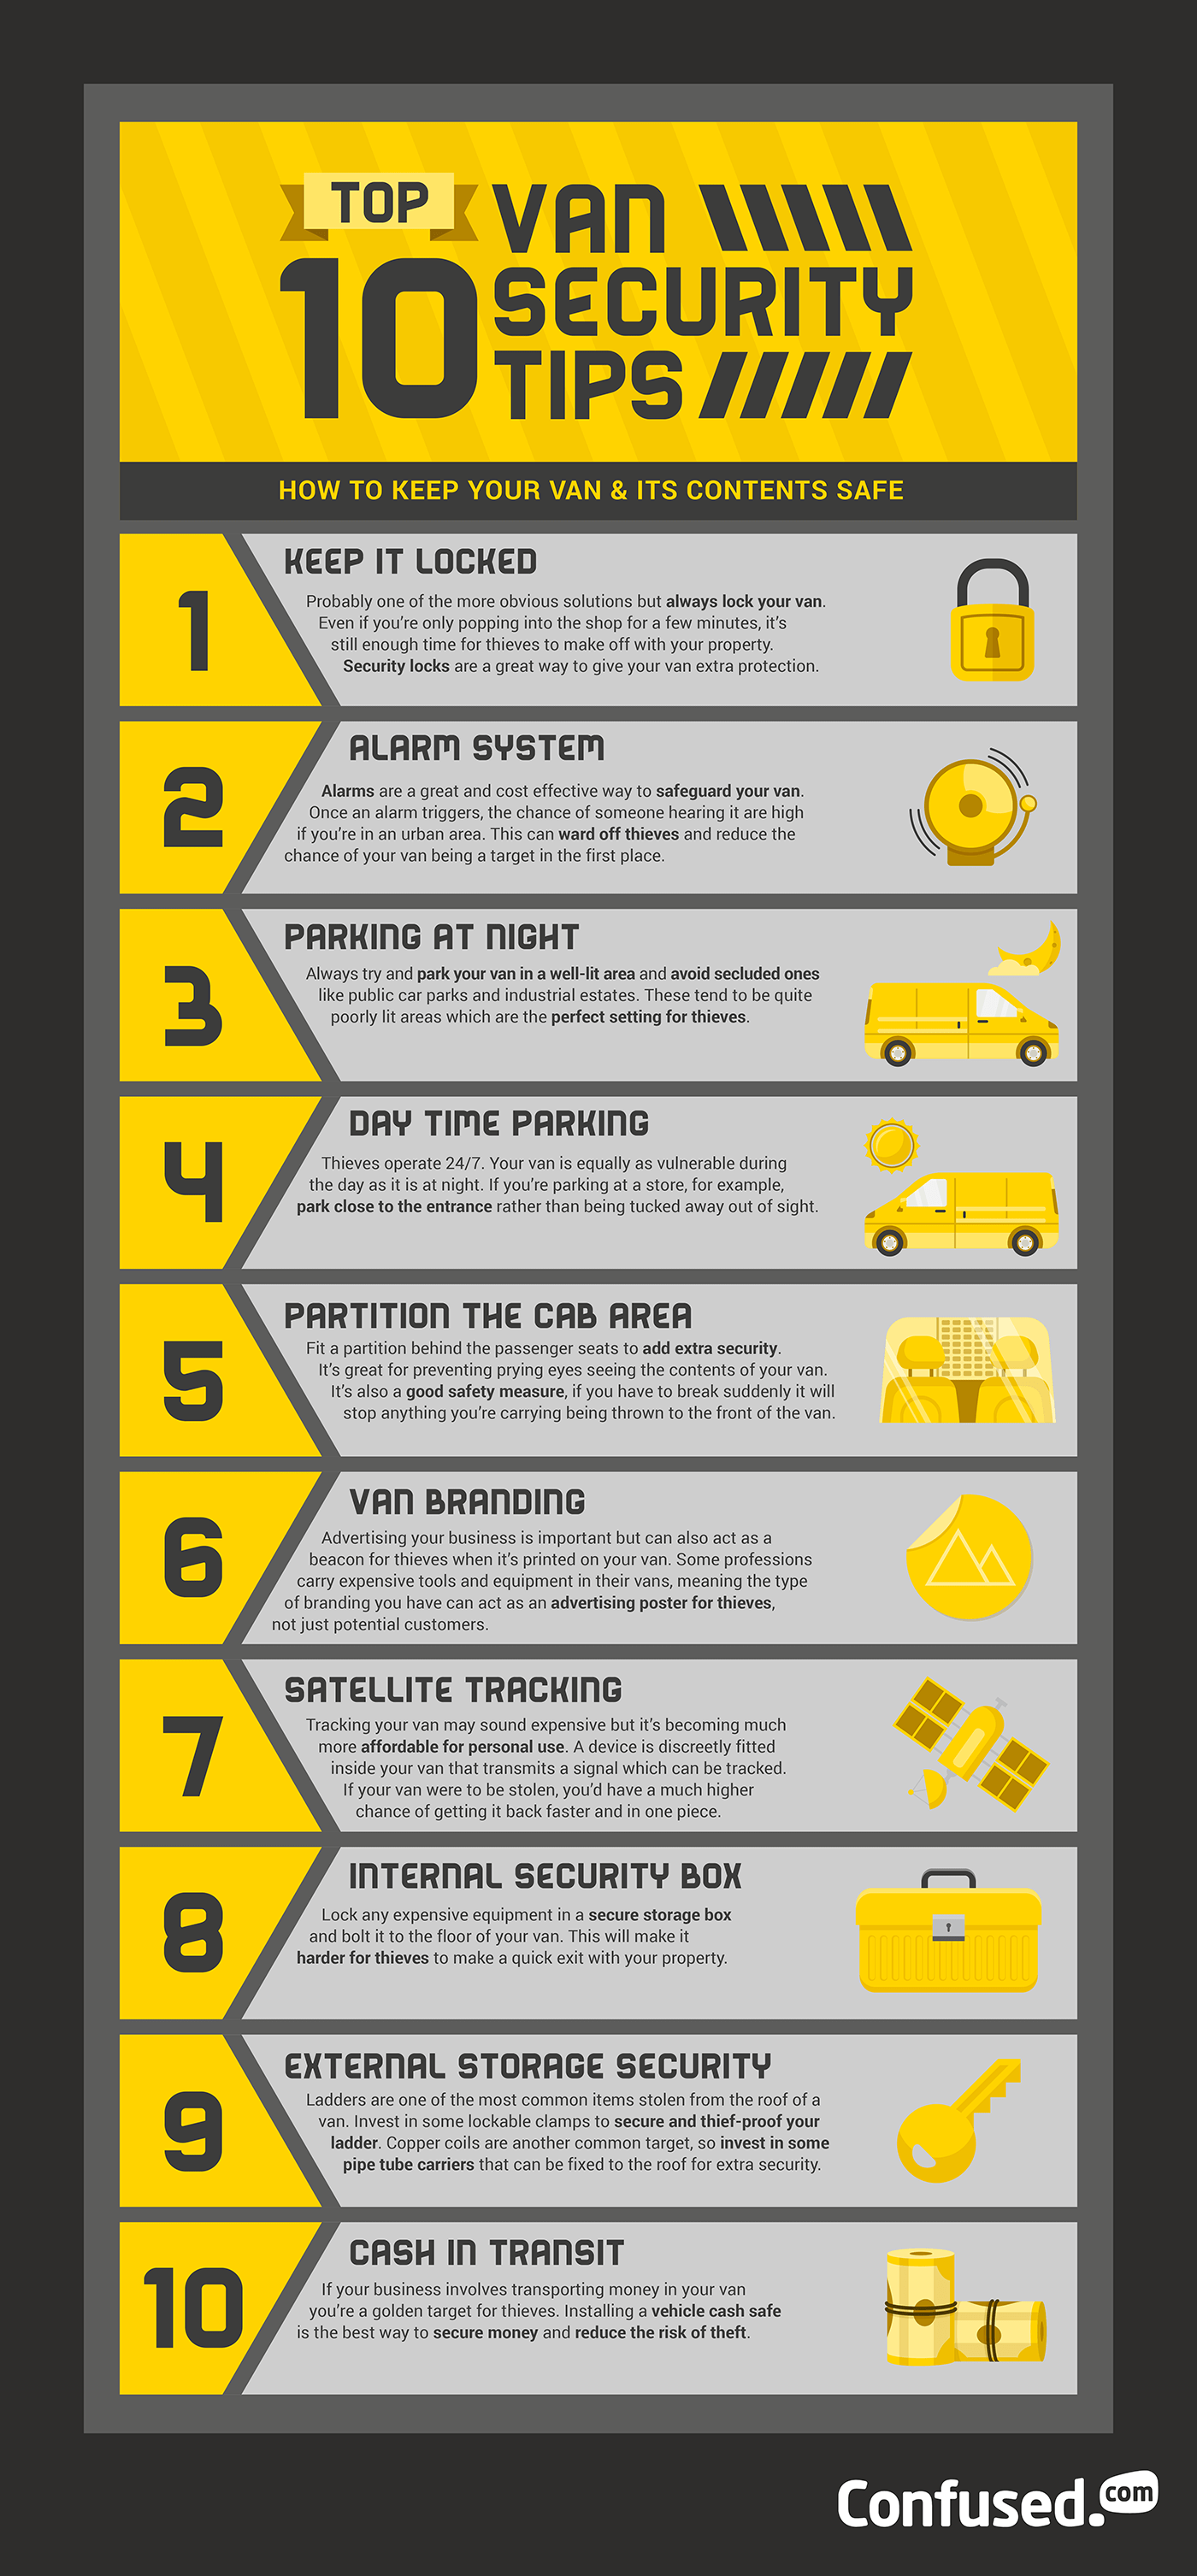 Top 10 van security tips